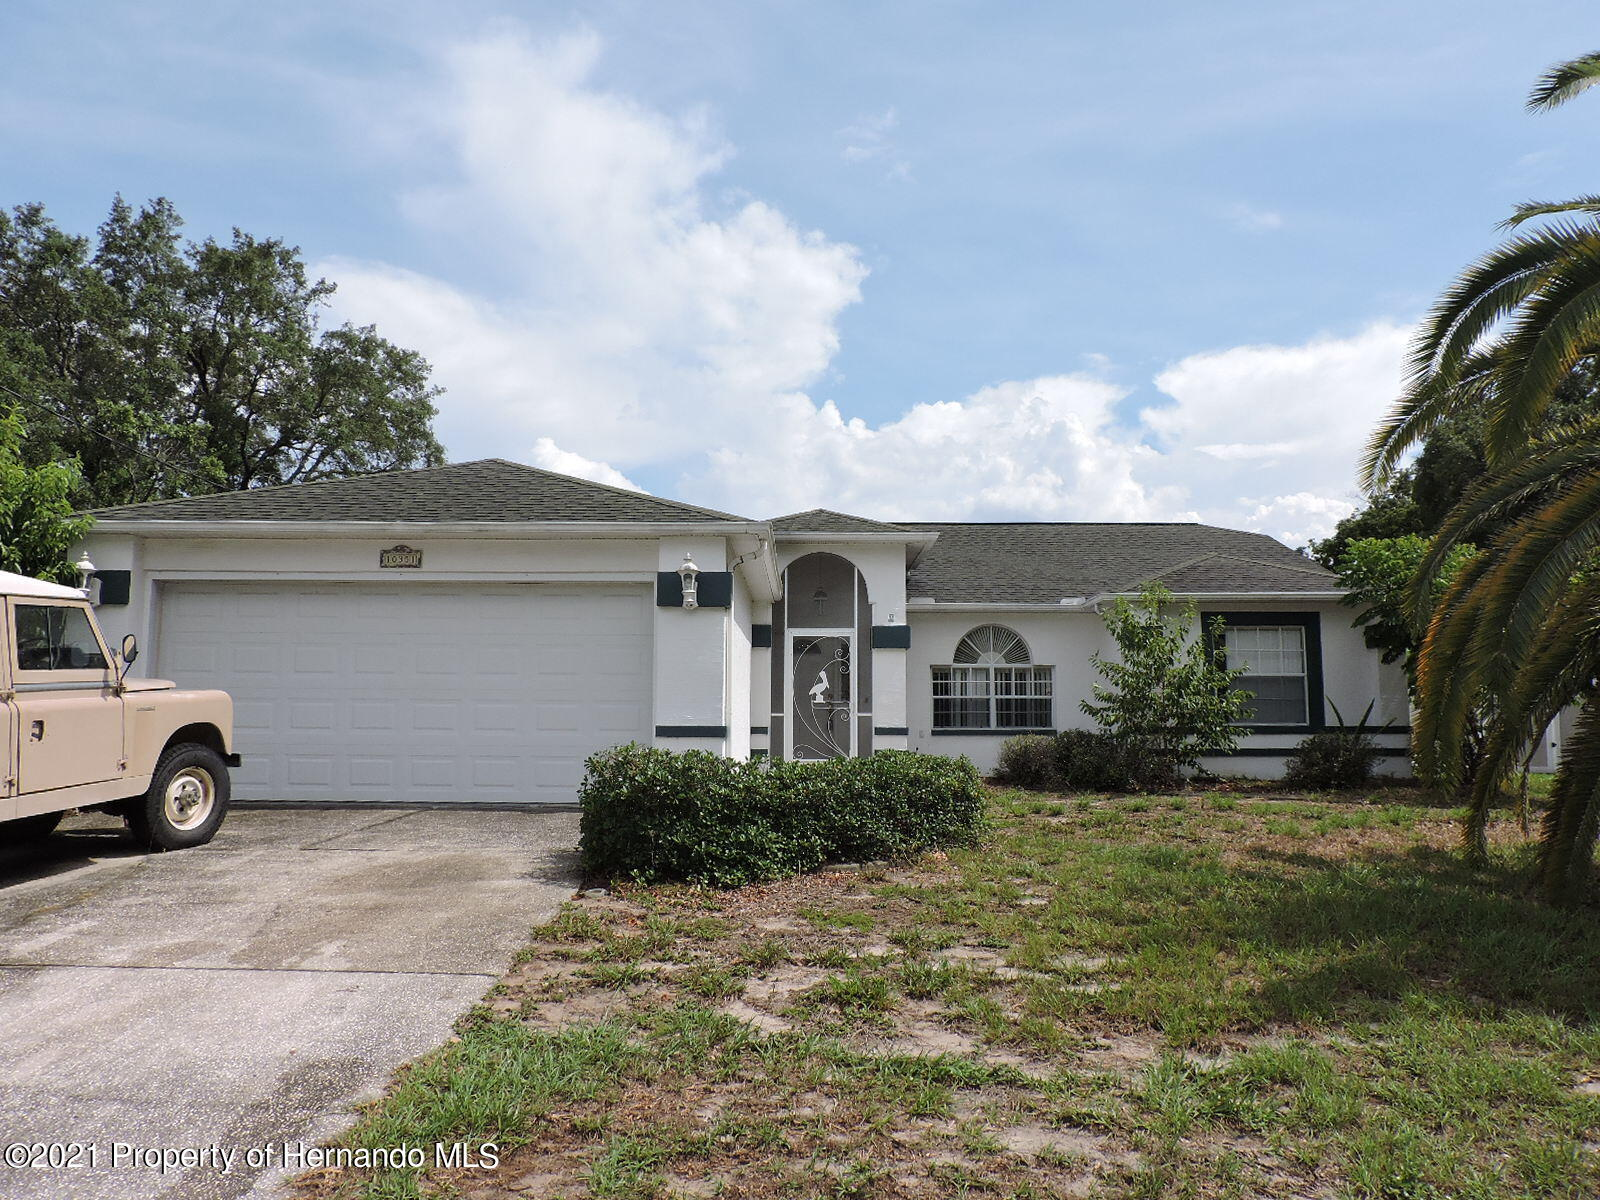 Details for 10351 Lacy Street, Spring Hill, FL 34608